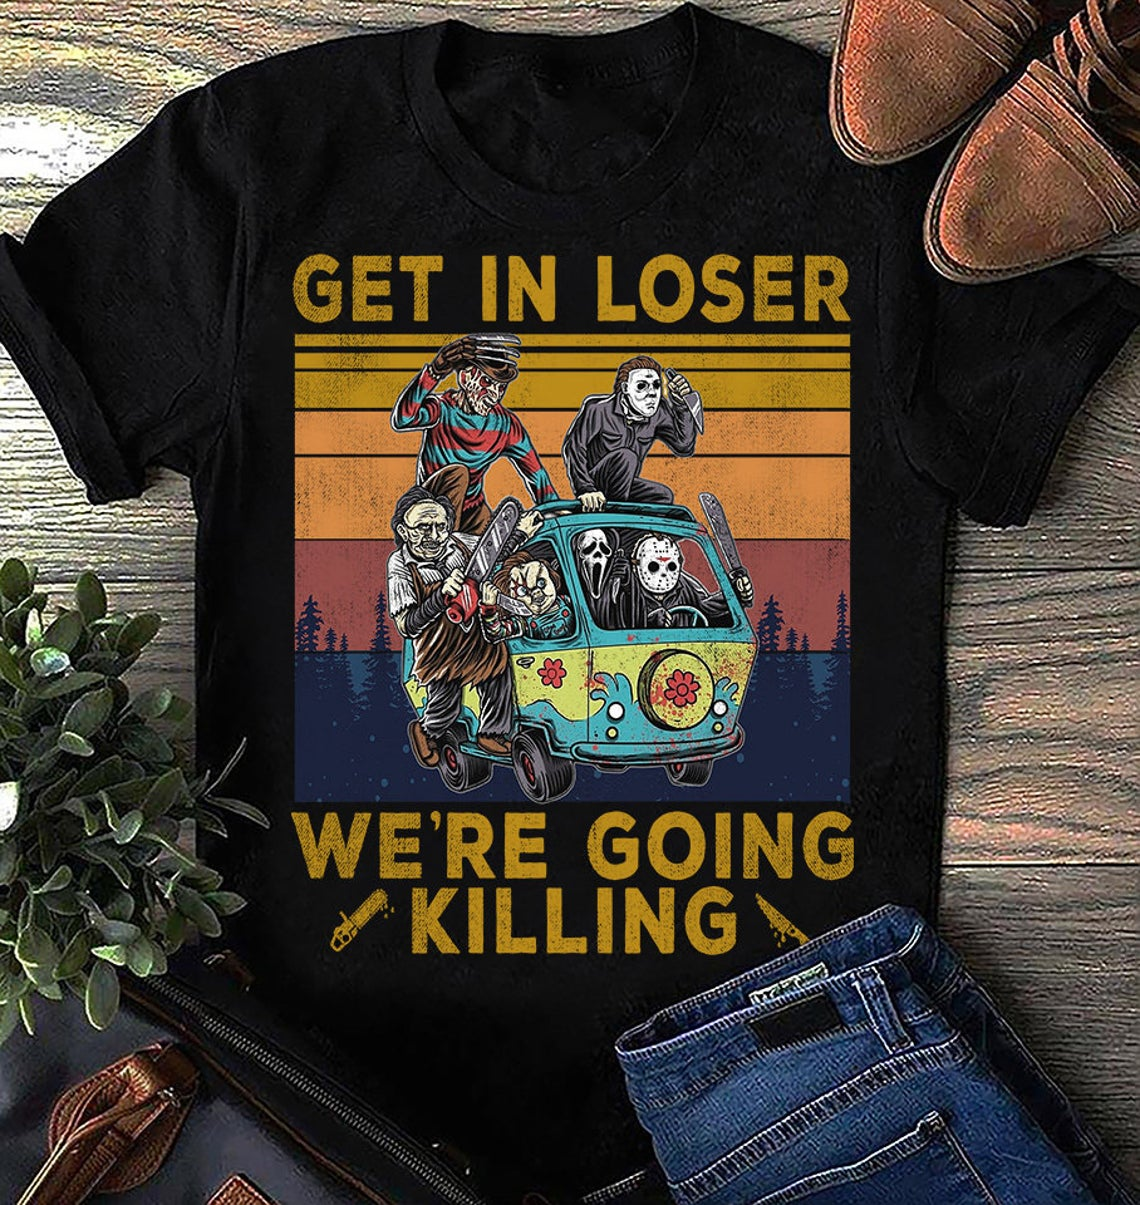 05 Vintage Halloween Get In Loser Were Going Killing Funny Shirt